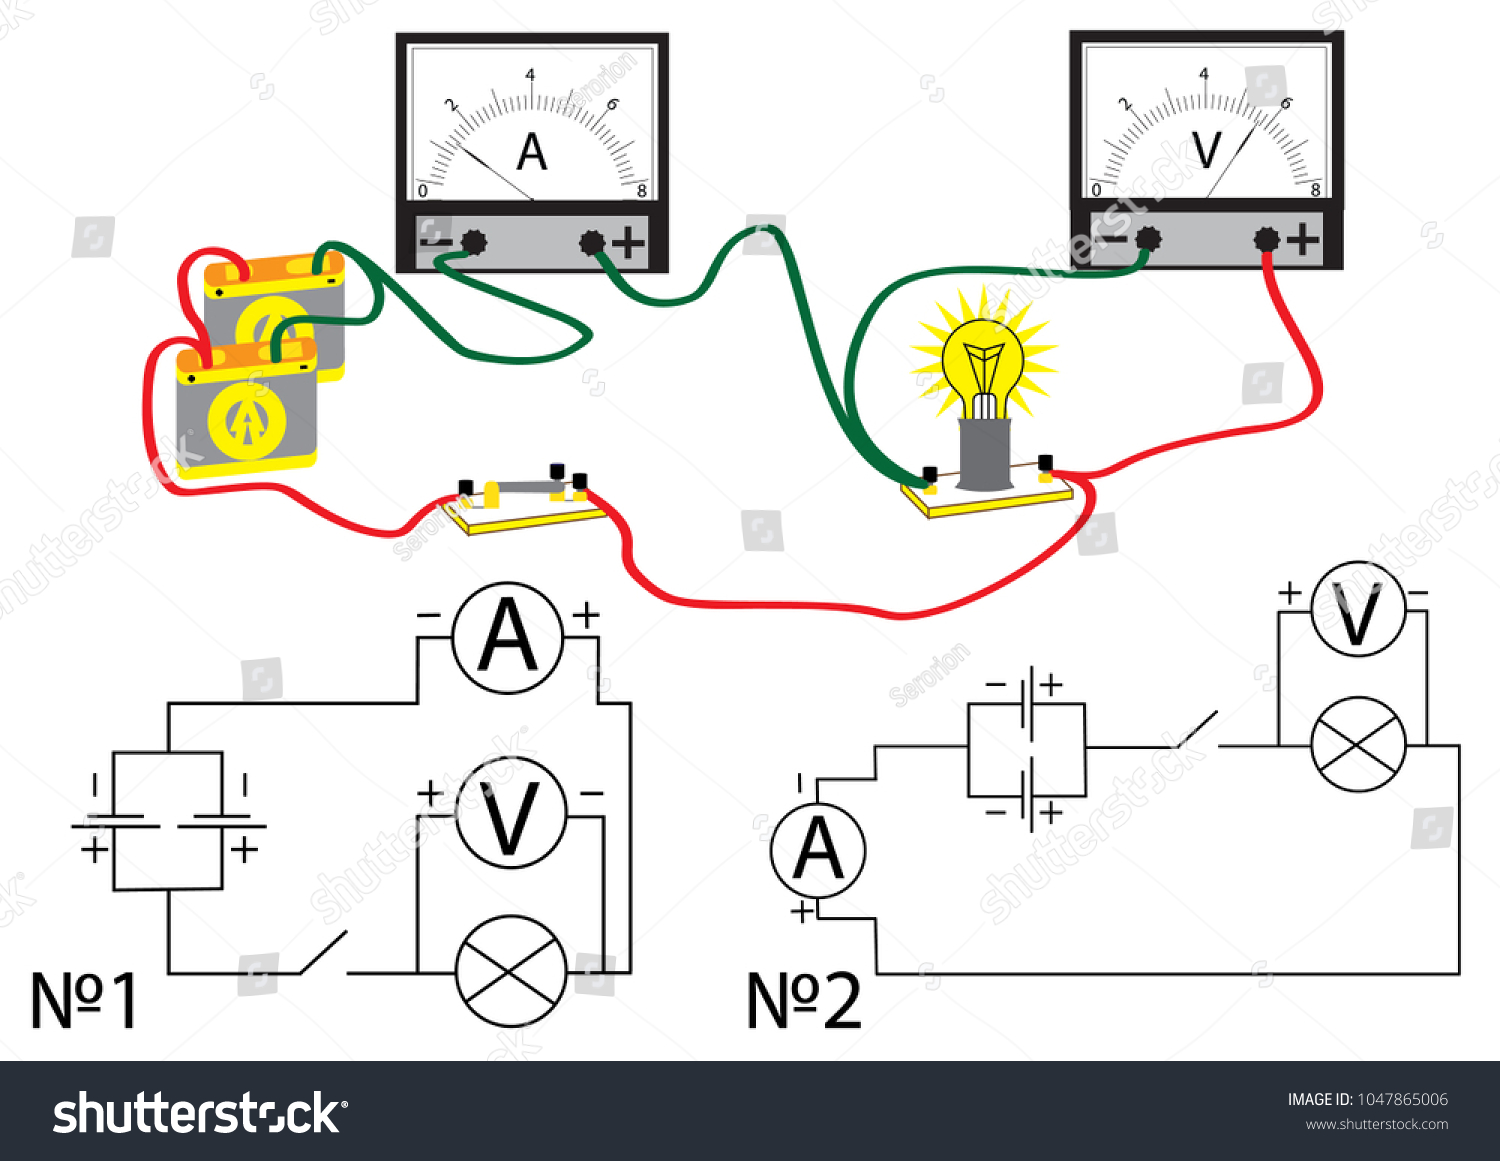 House Builder Simulator Funky Electricalcircuit Images Electrical And Wiring